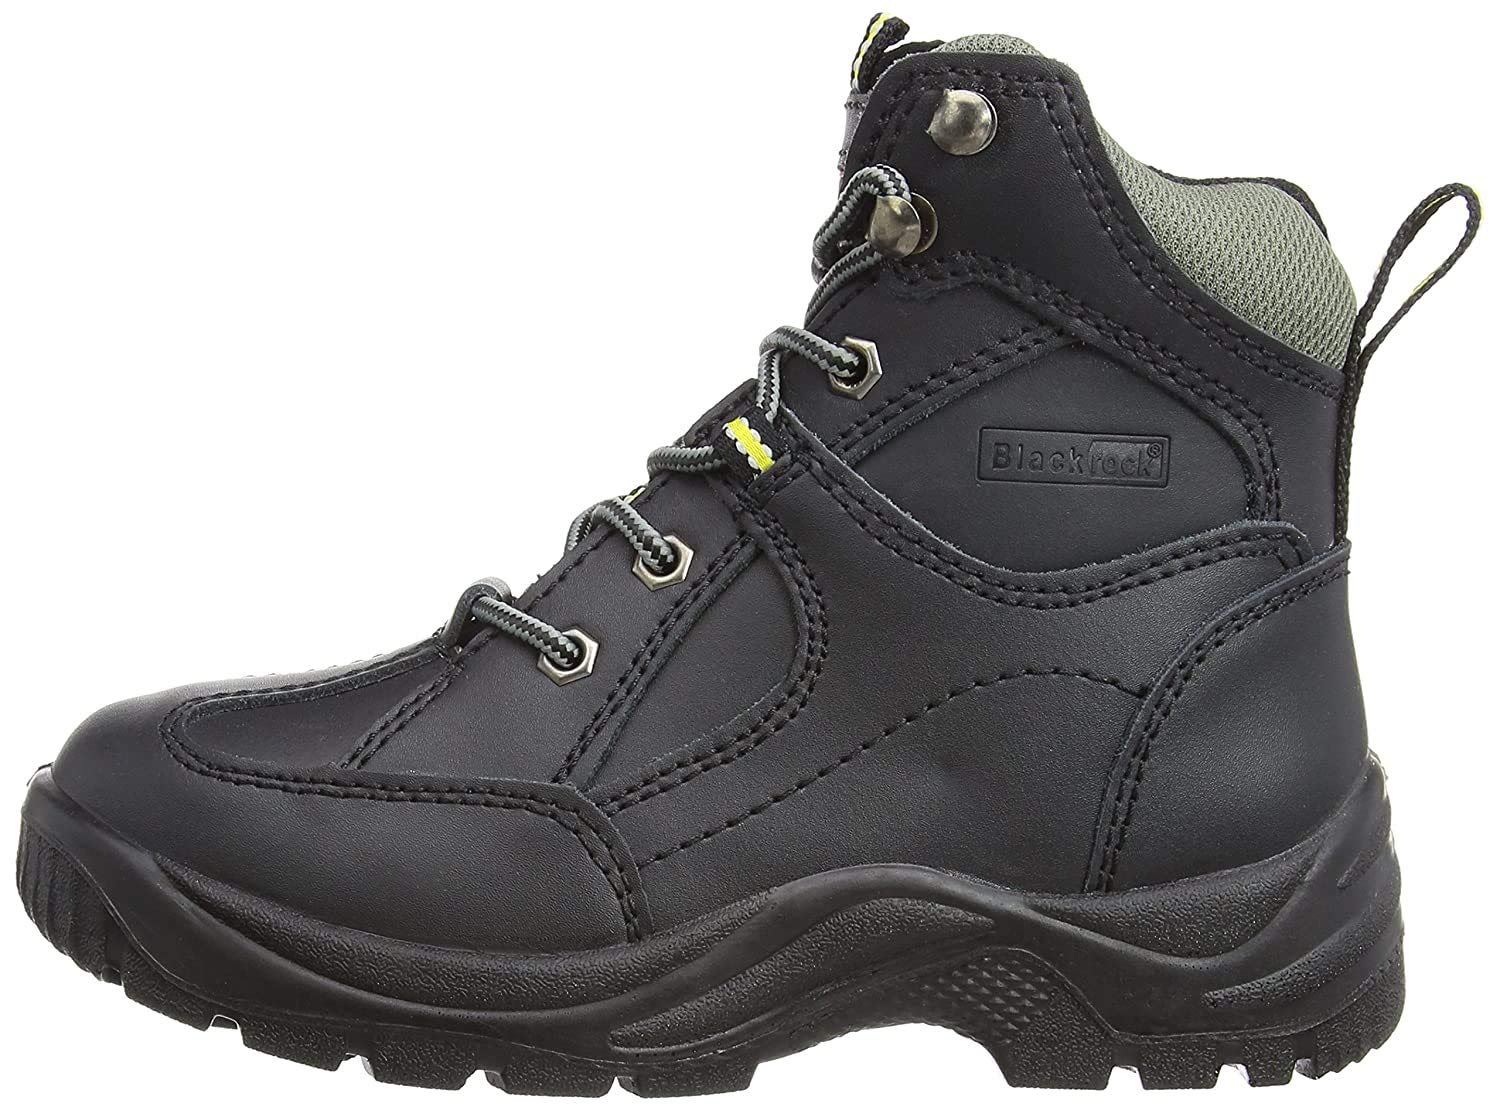 Blackrock SF13 Tomahawk Safety Boot S3 SRC